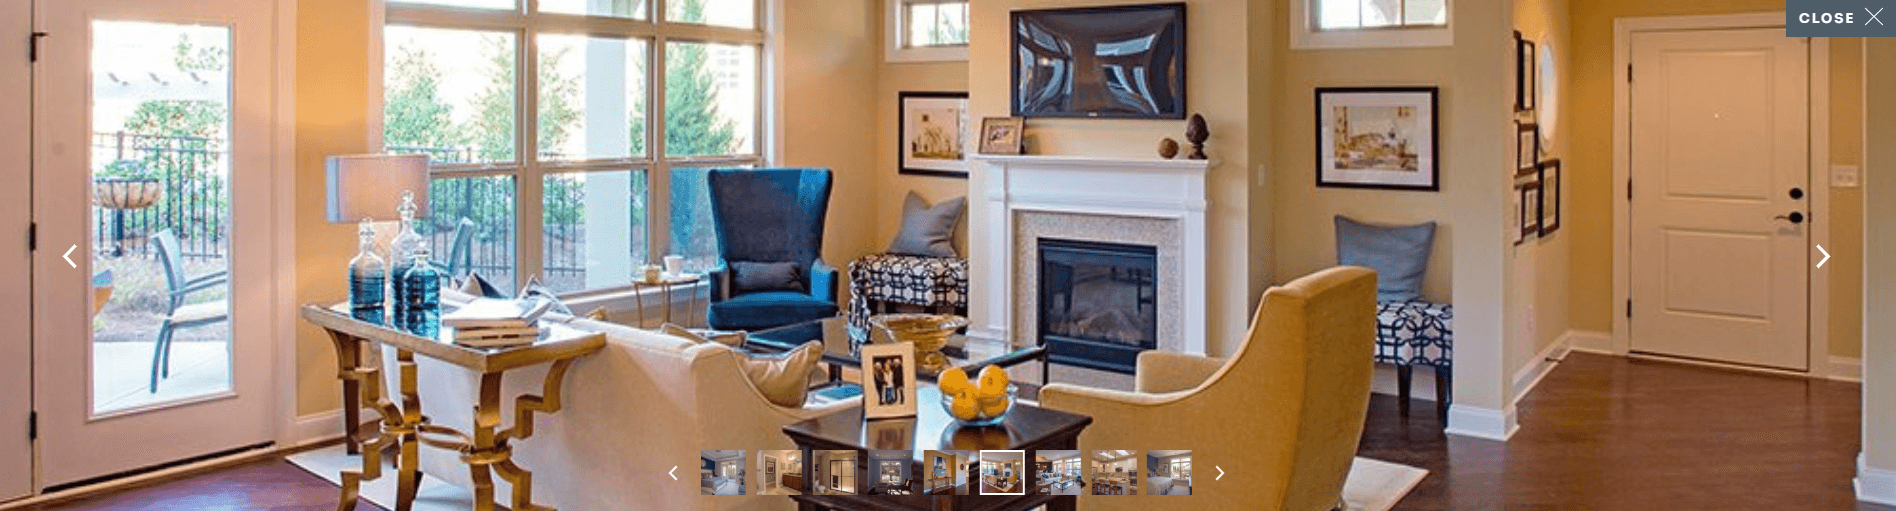 Living Area featured in the Promenade By Epcon Homes and Communities in Cincinnati, OH